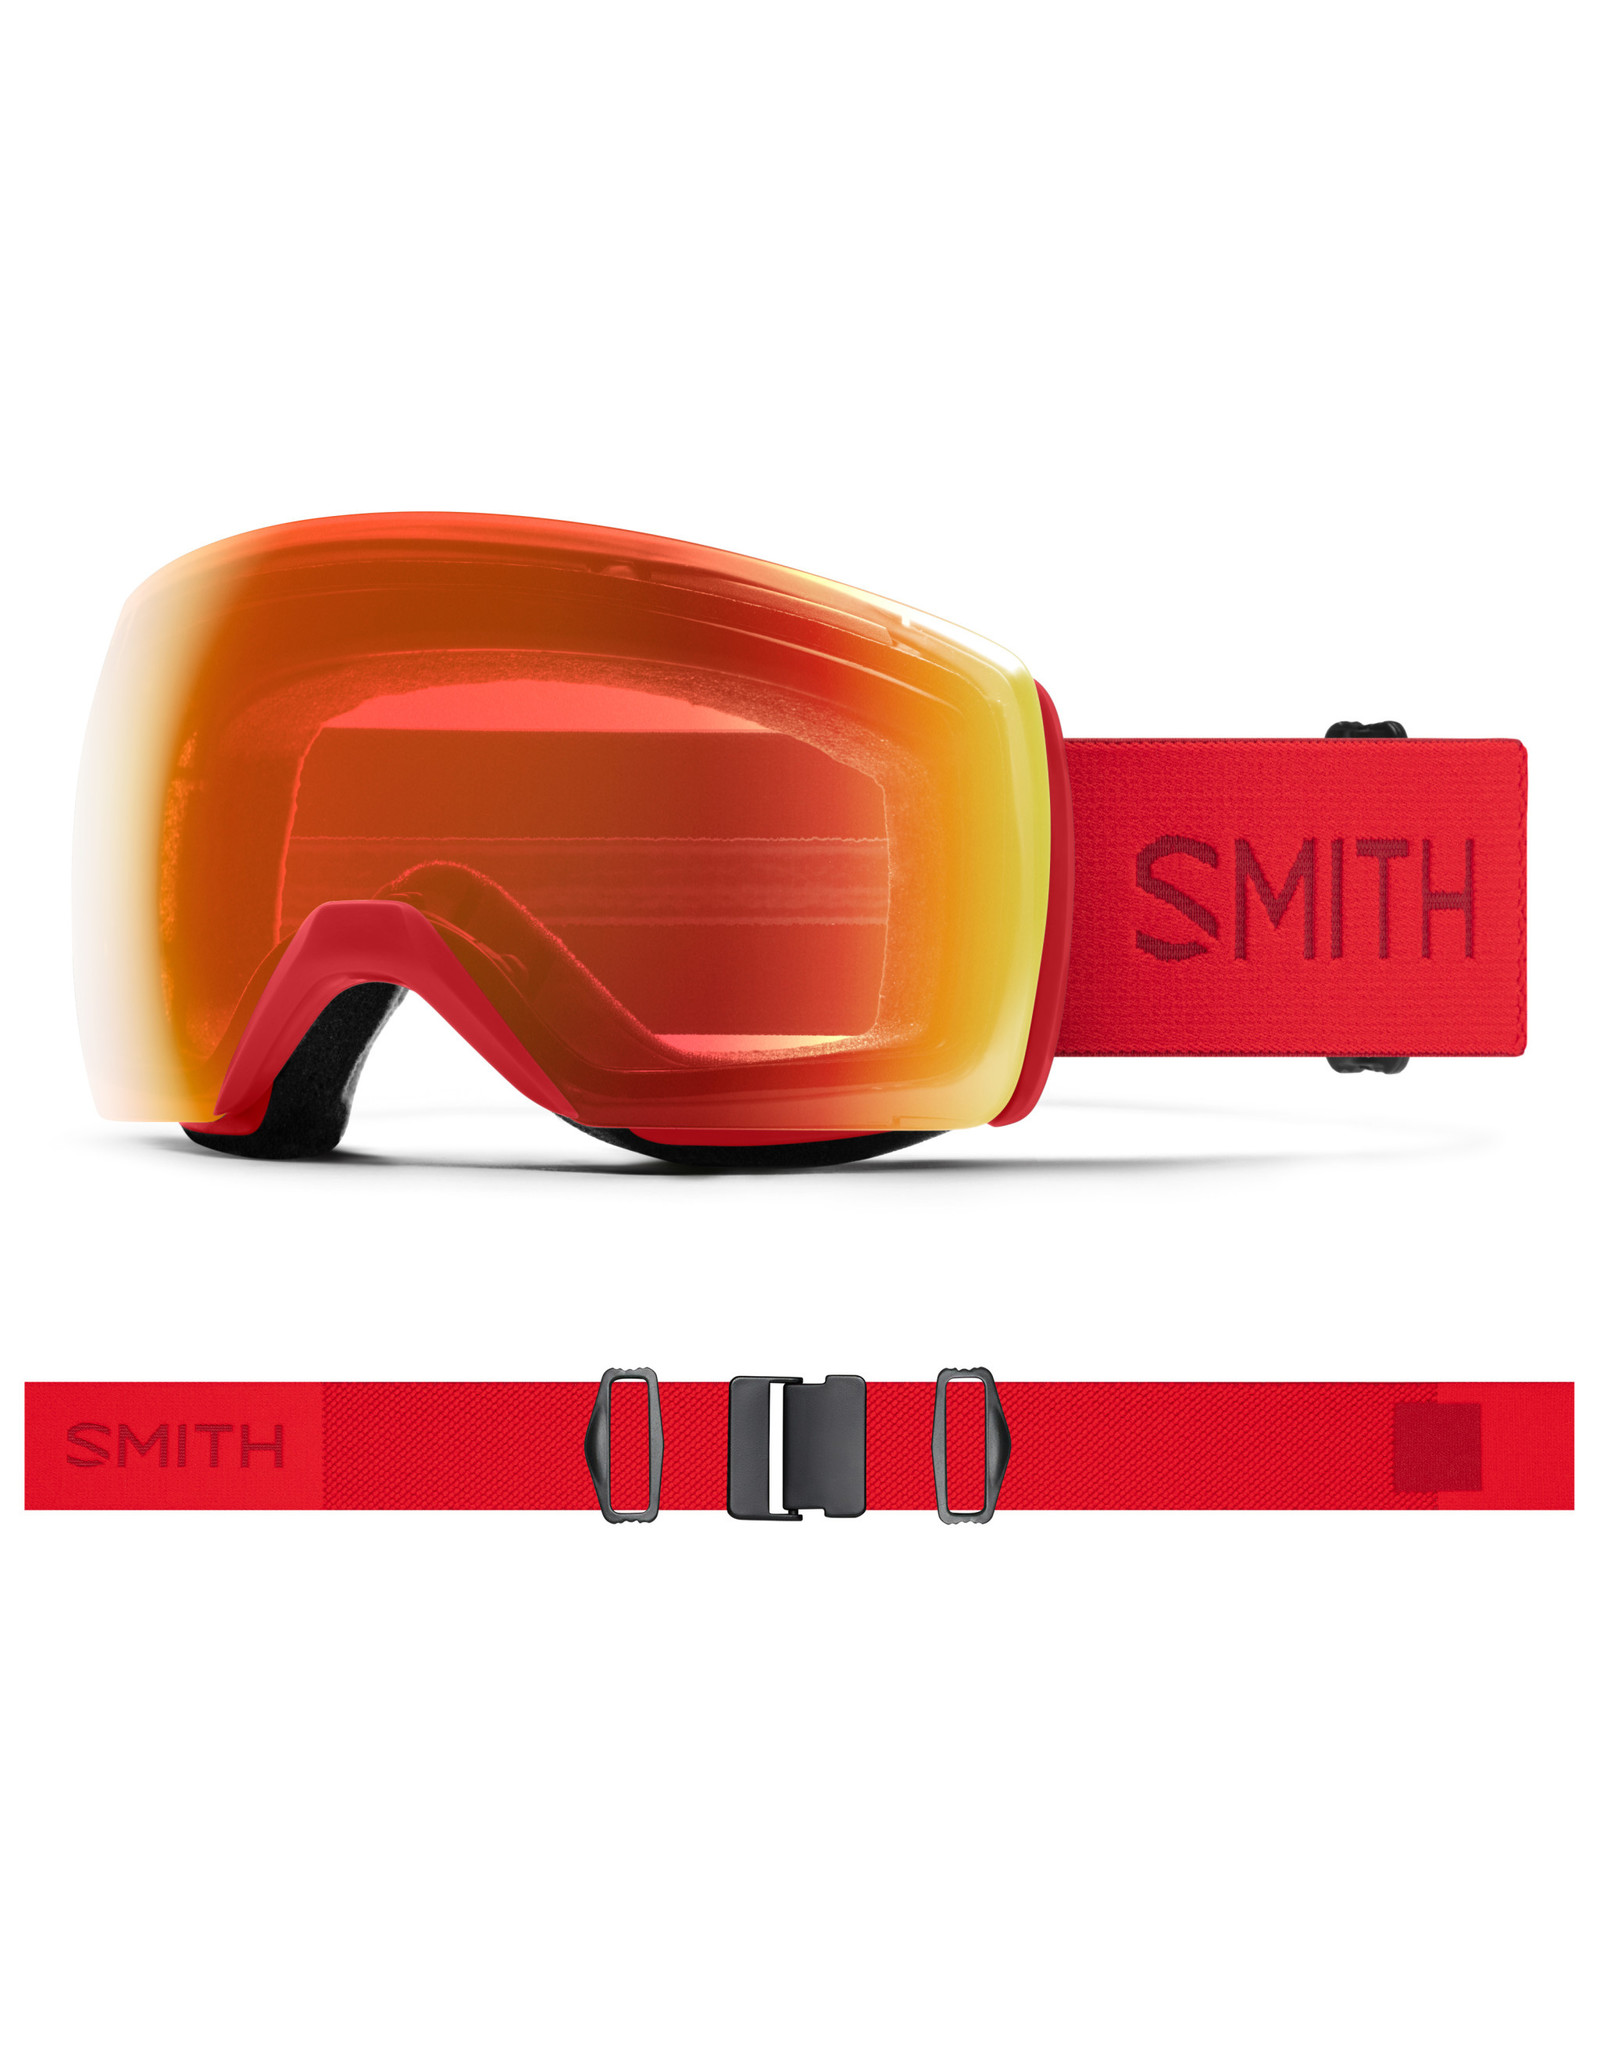 Smith SMITH SKYLINE XL LAVA 20 SKI GOGGLE